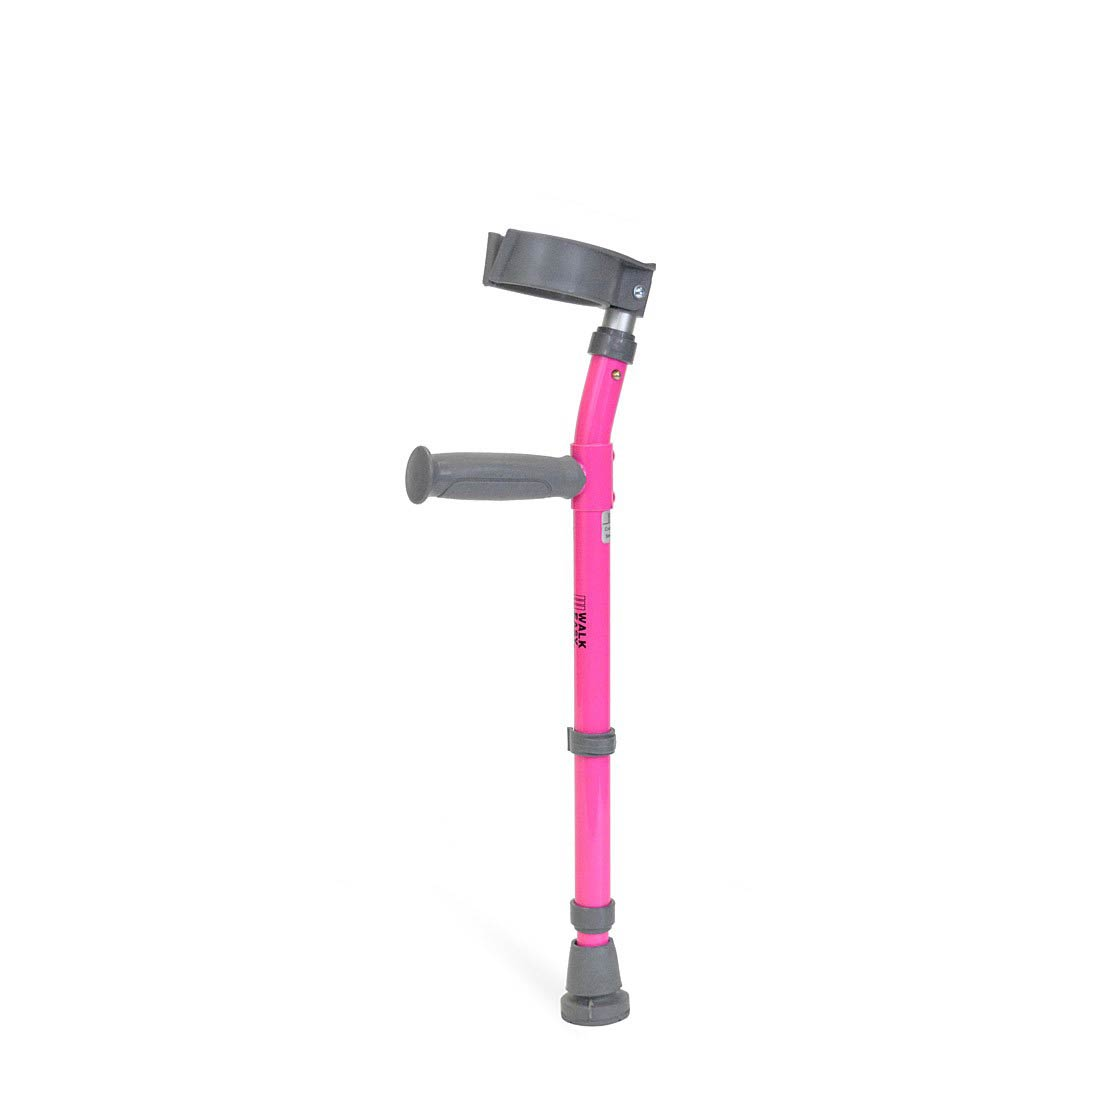 Walk Easy Toddler forearm height adjustable crutches with 3